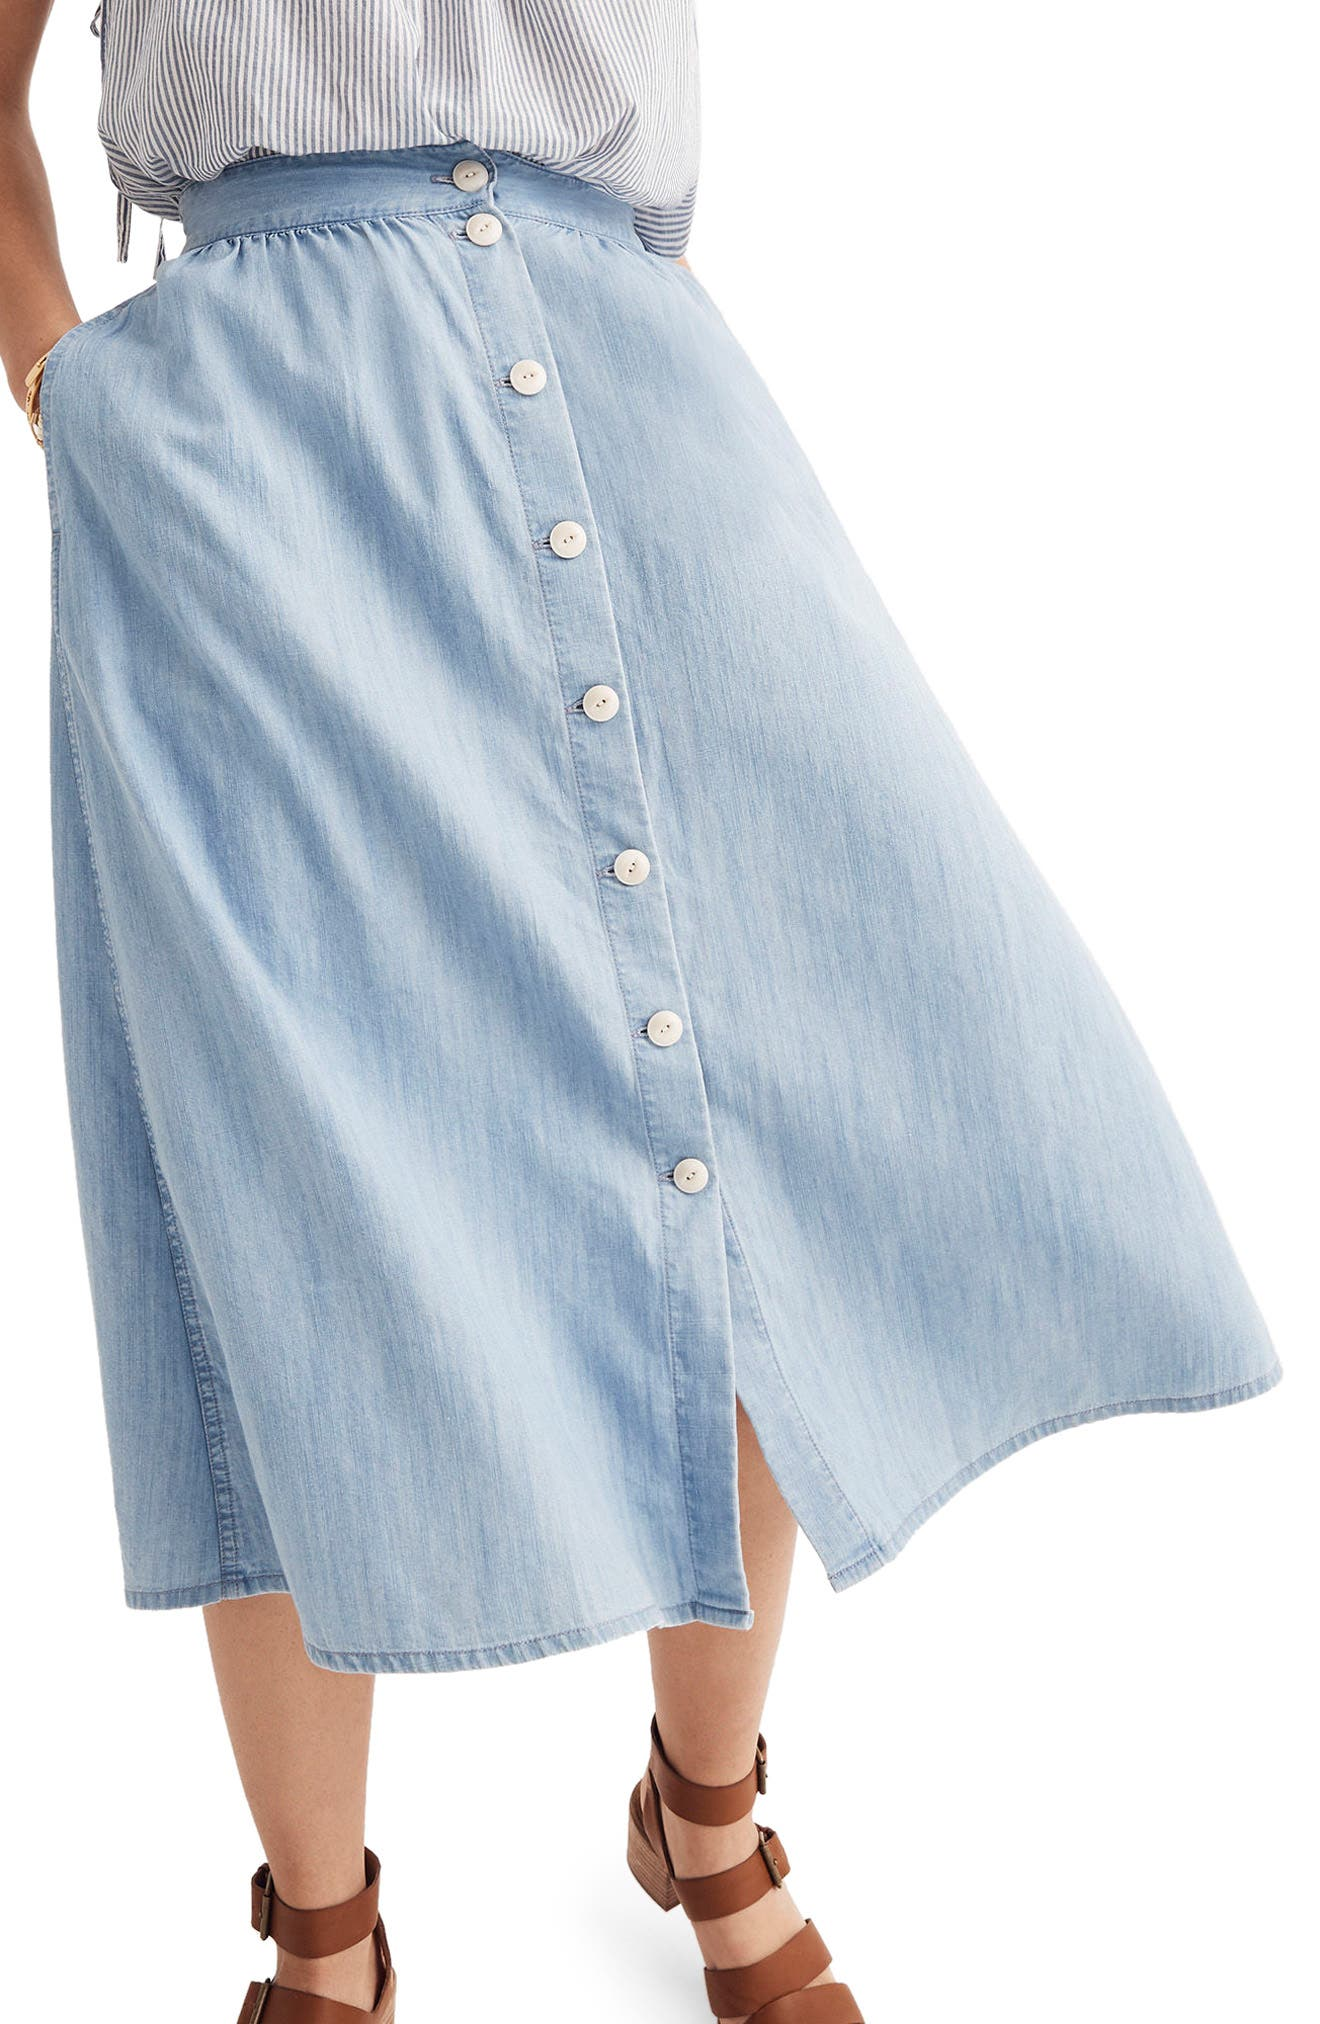 Button Front Midi Skirt,                             Alternate thumbnail 3, color,                             Altamira Wash